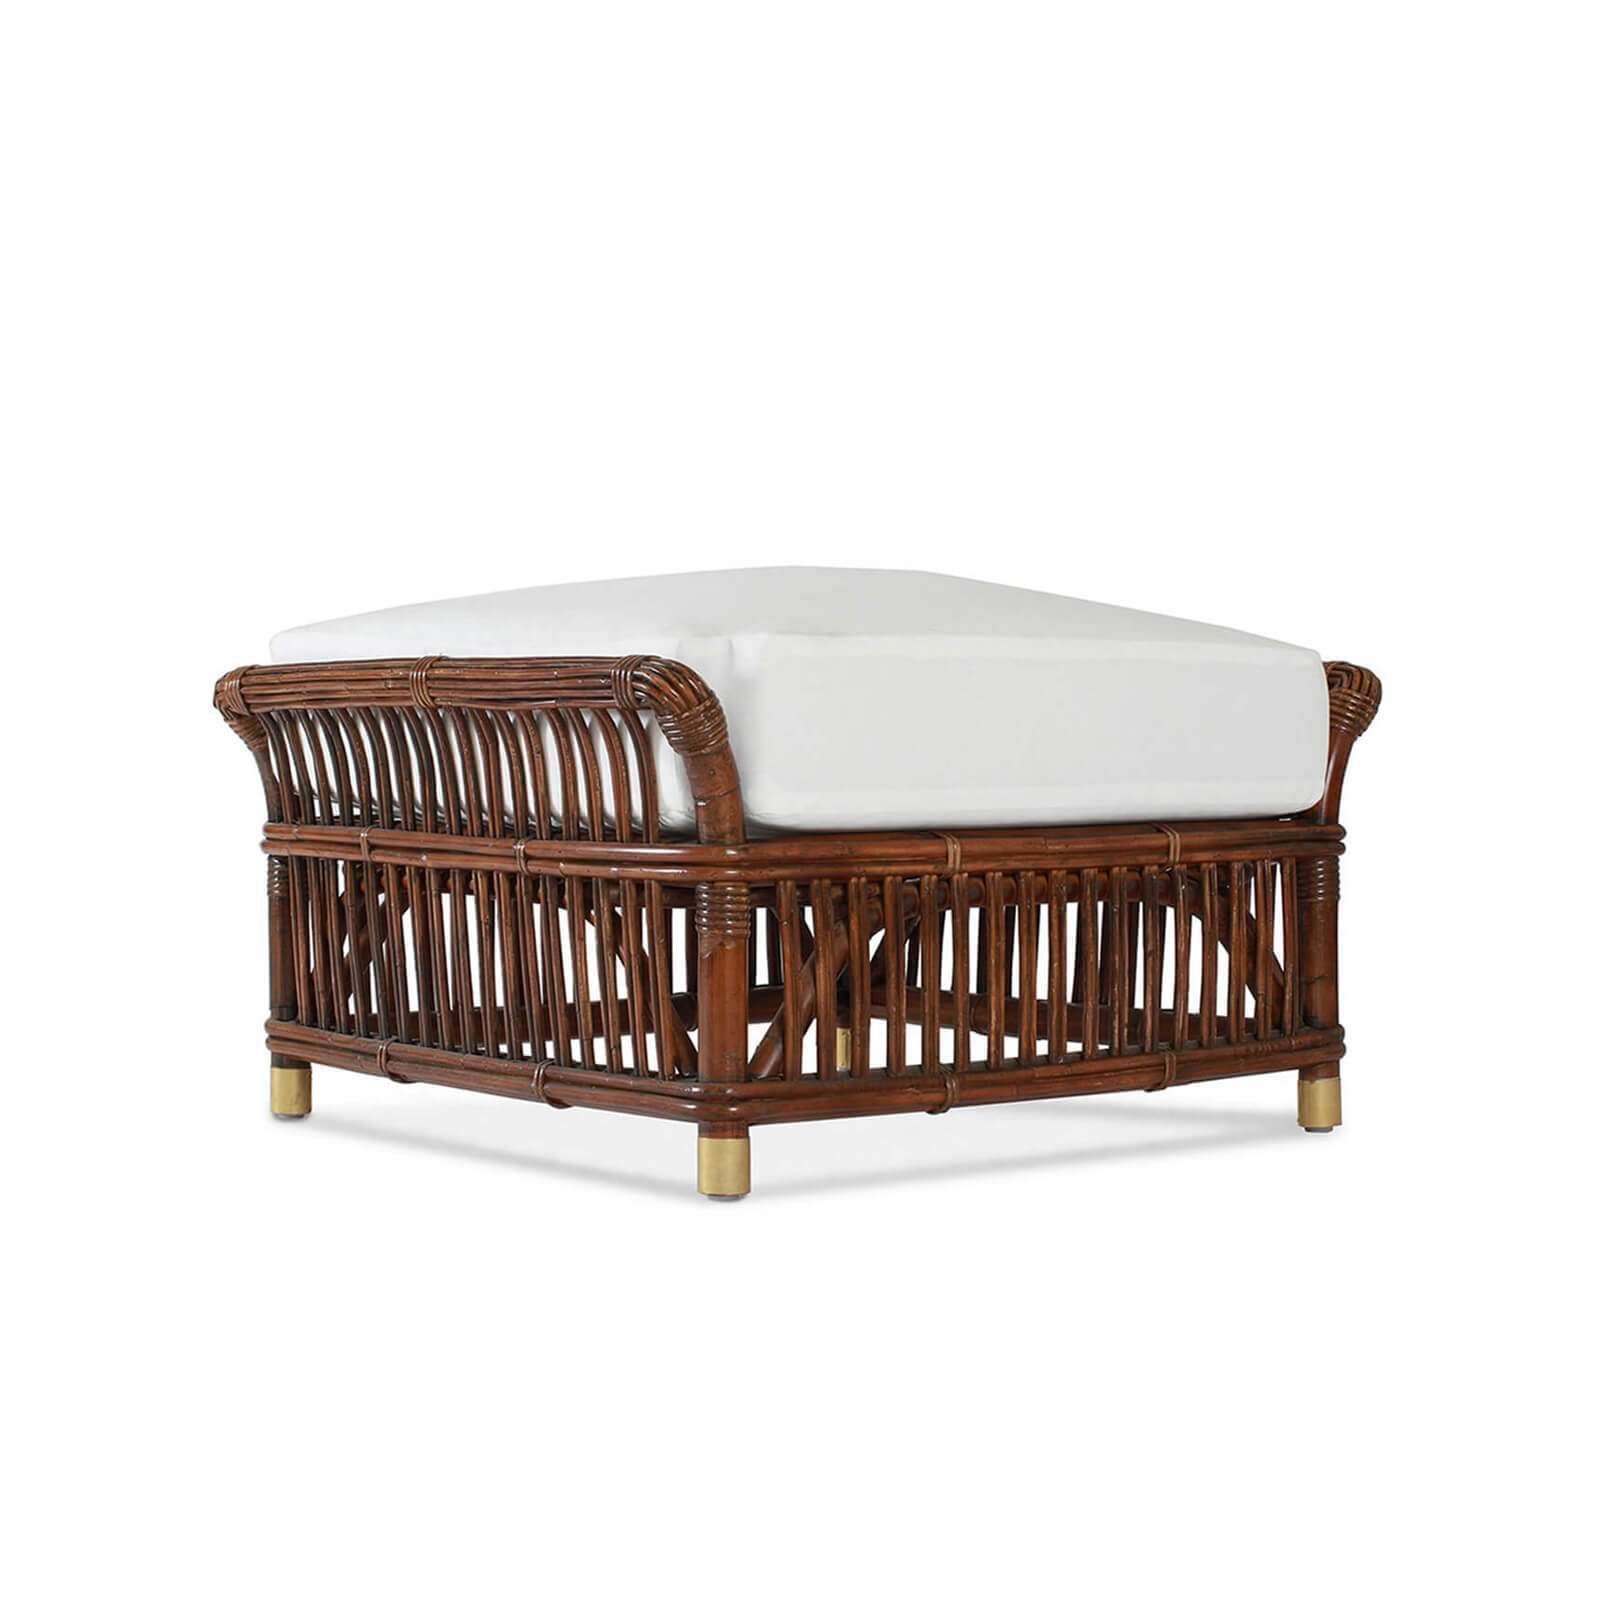 PARROT CAY OTTOMAN 012 - STUART MEMBERY HOME COLLECTION